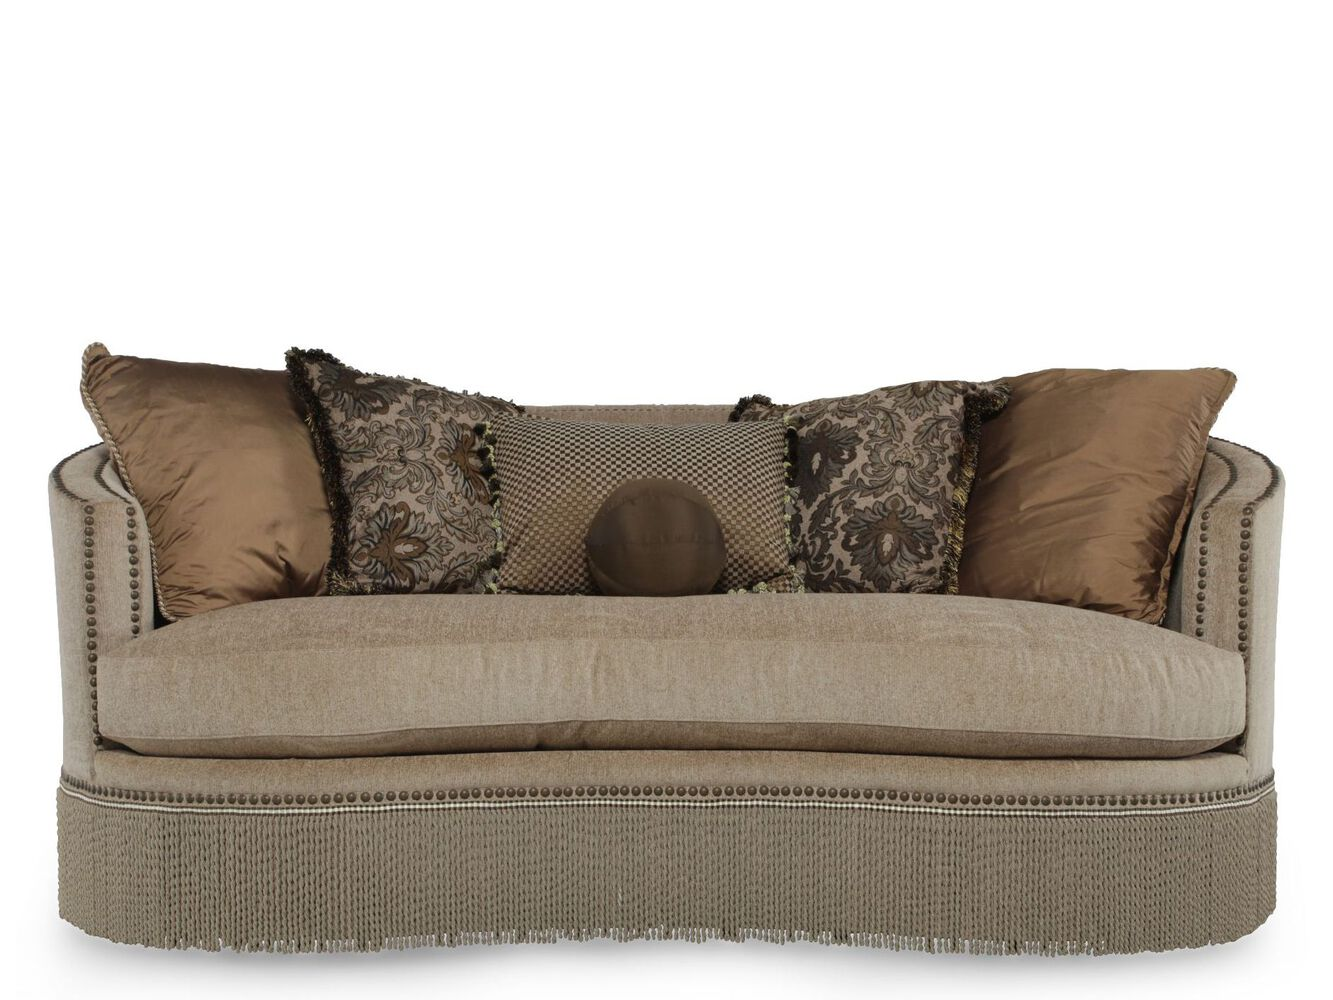 Fringed traditional demilune sofa in tan mathis brothers for Traditional couches for sale